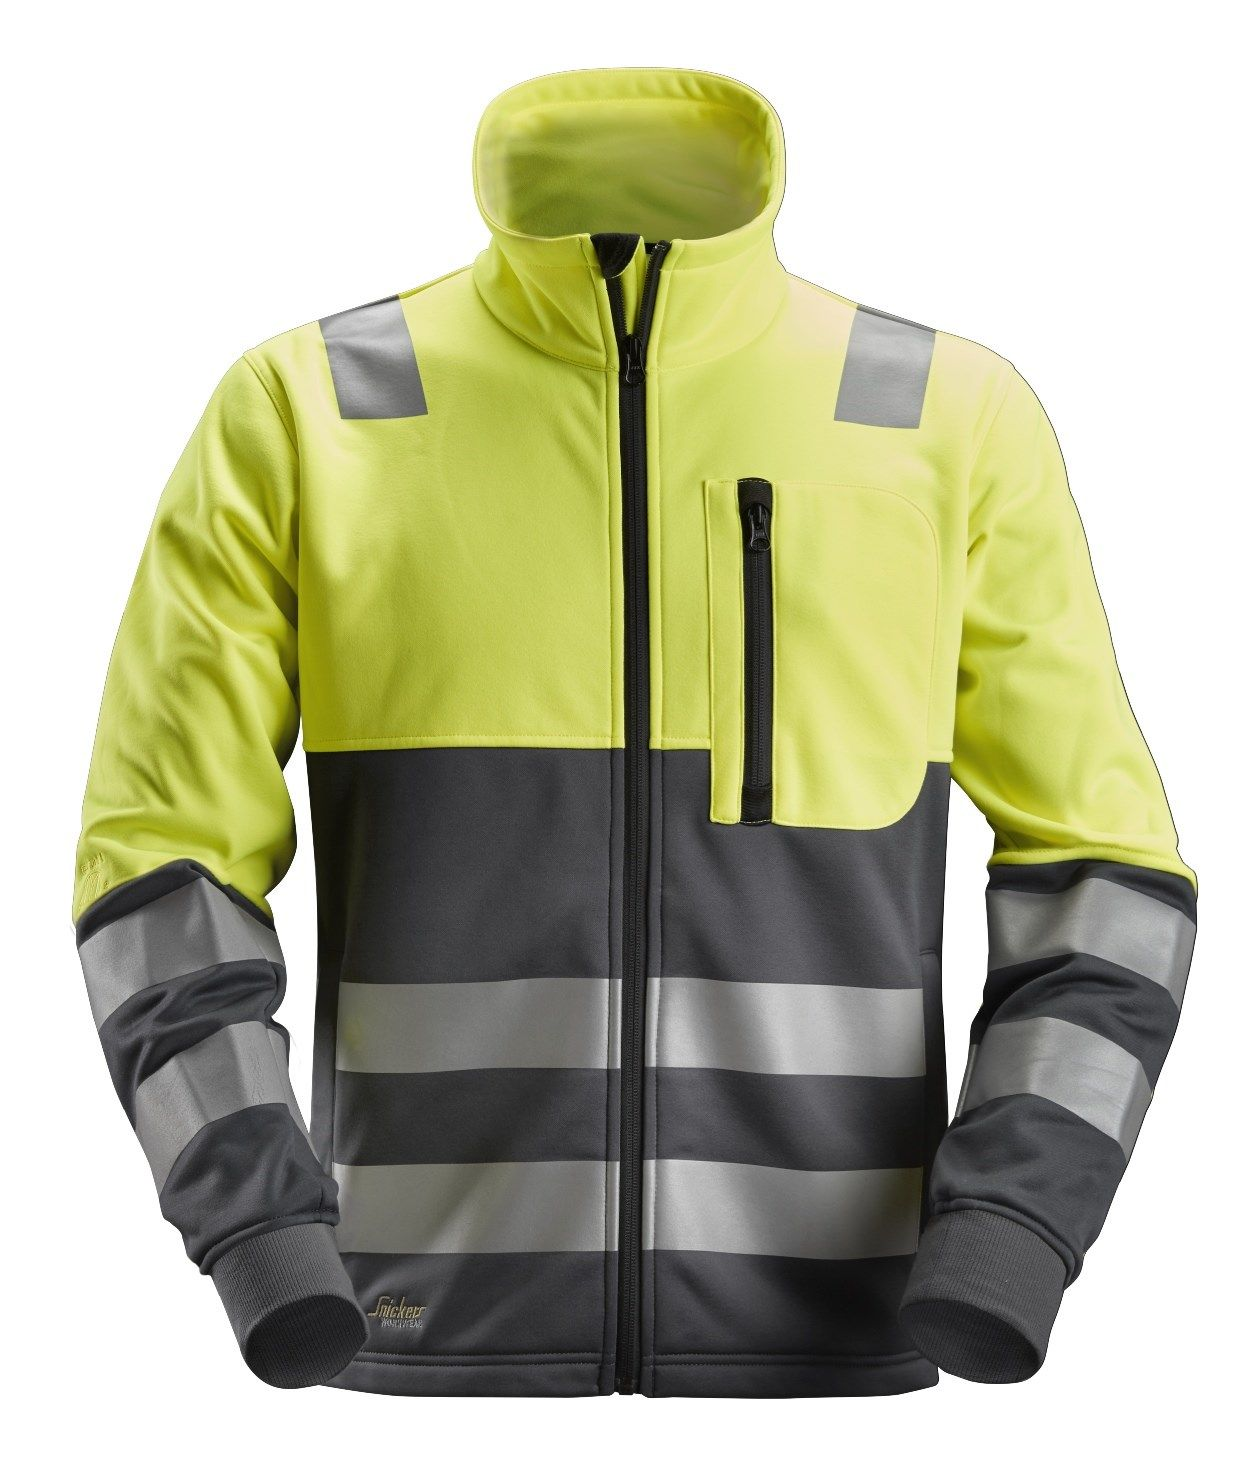 Snickers 8035 Allround Work High-Vis FZ Jacket Class 2 Yellow